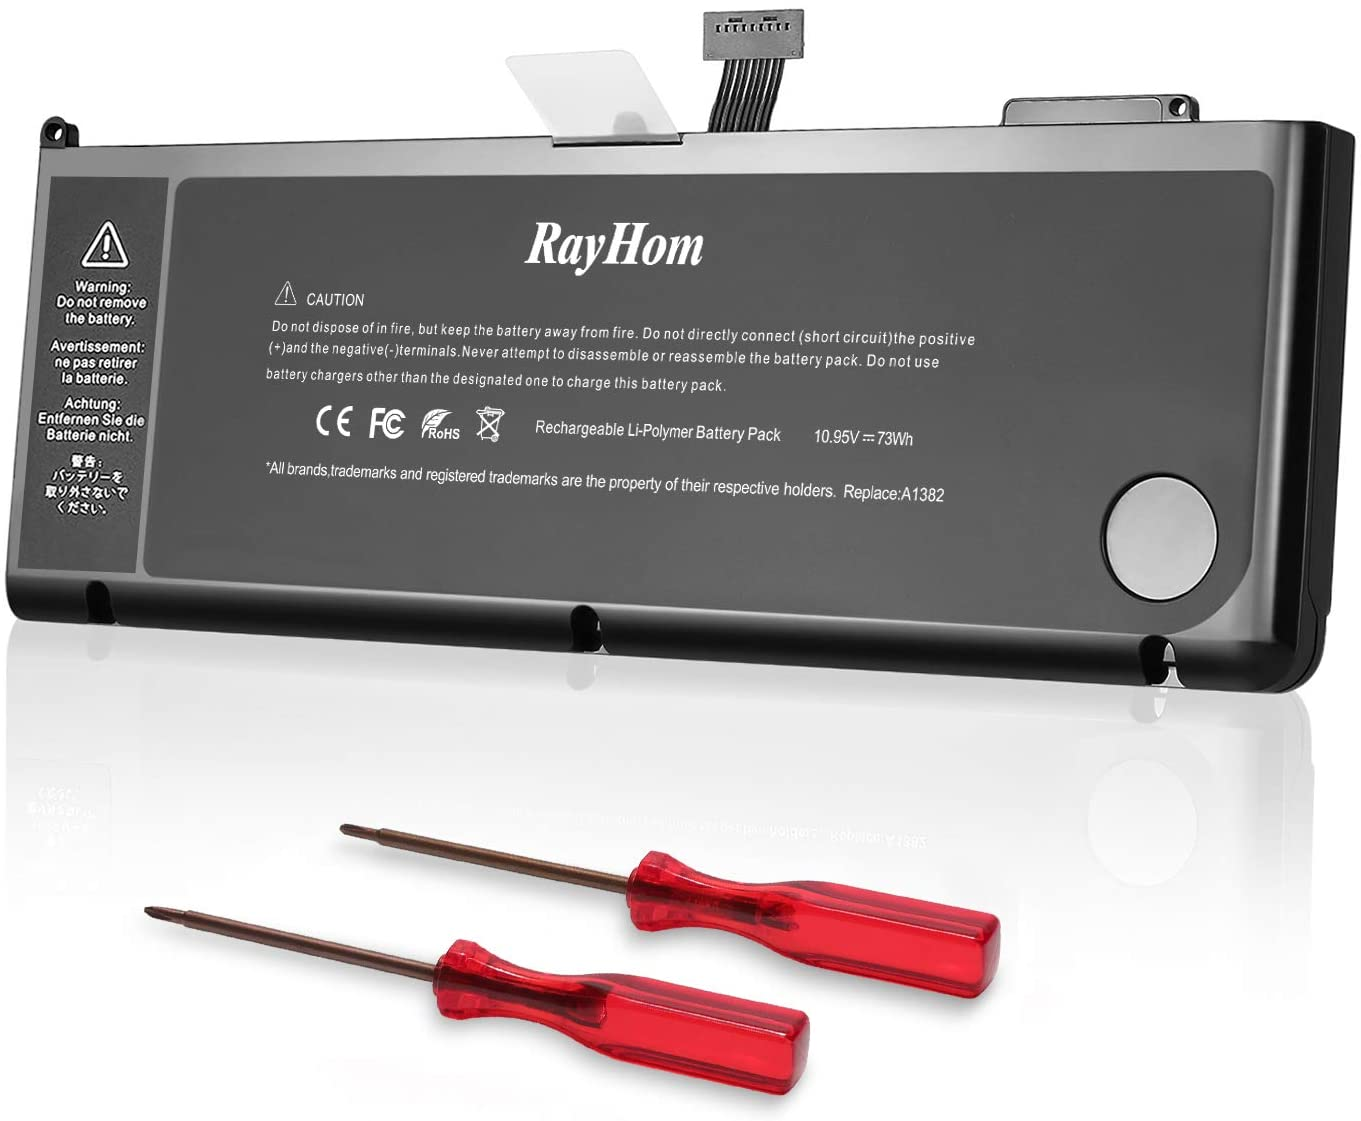 RayHom A1382 A1286 Battery Compatiblefor Early 2011 Late 2011 Mid 2012 MacBook Pro 15 inch Core i7